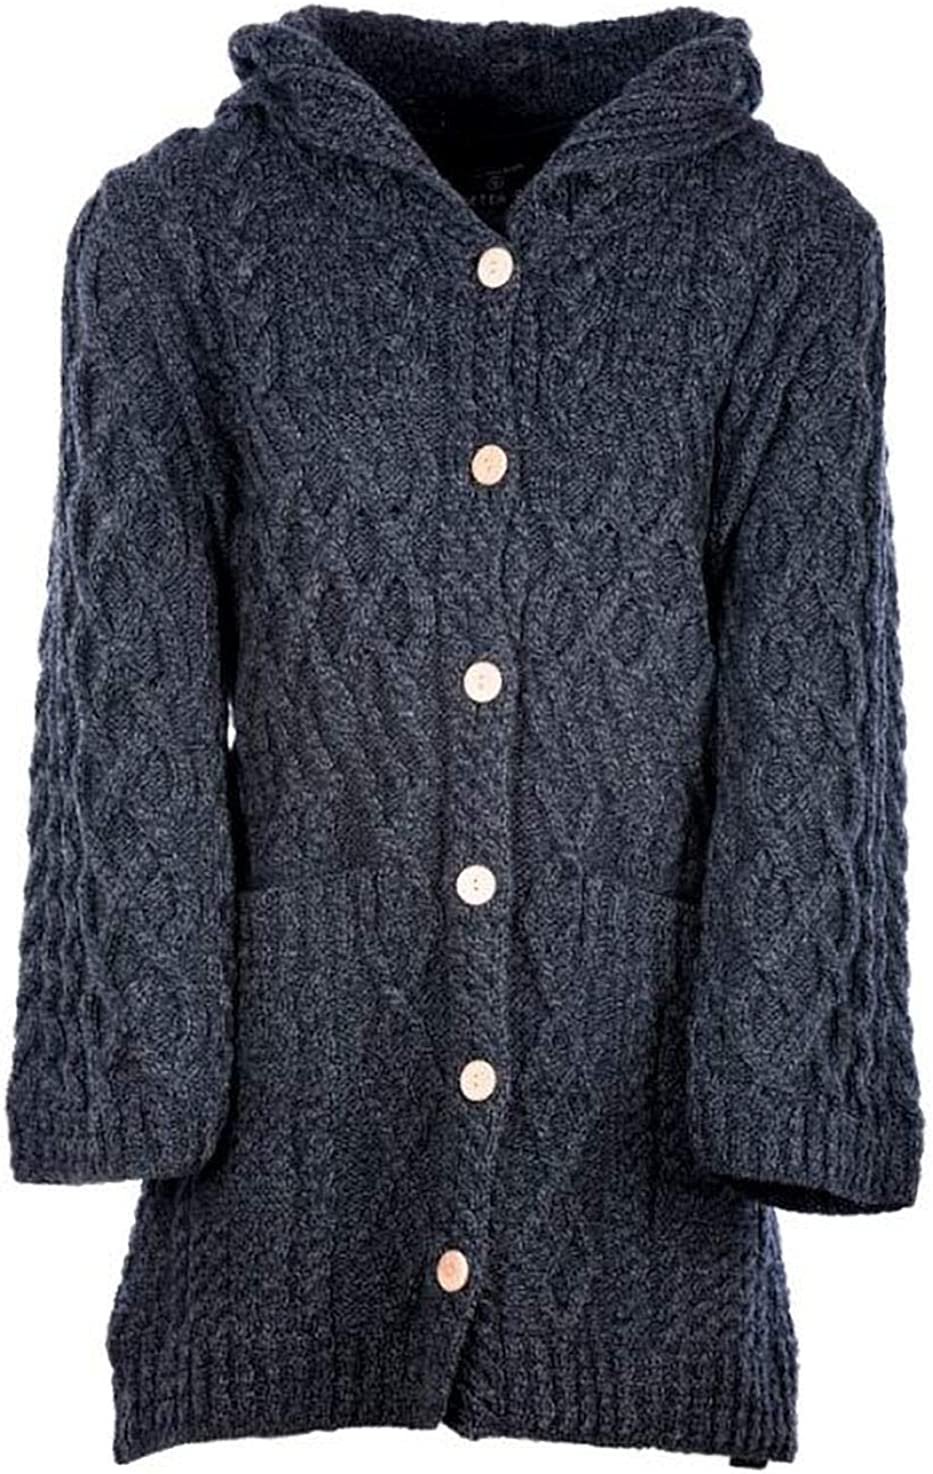 Ladies - Merino Wool - Irish Knit - Buttons Long Cardigan for Women with Hood and Front Pockets Made in Ireland